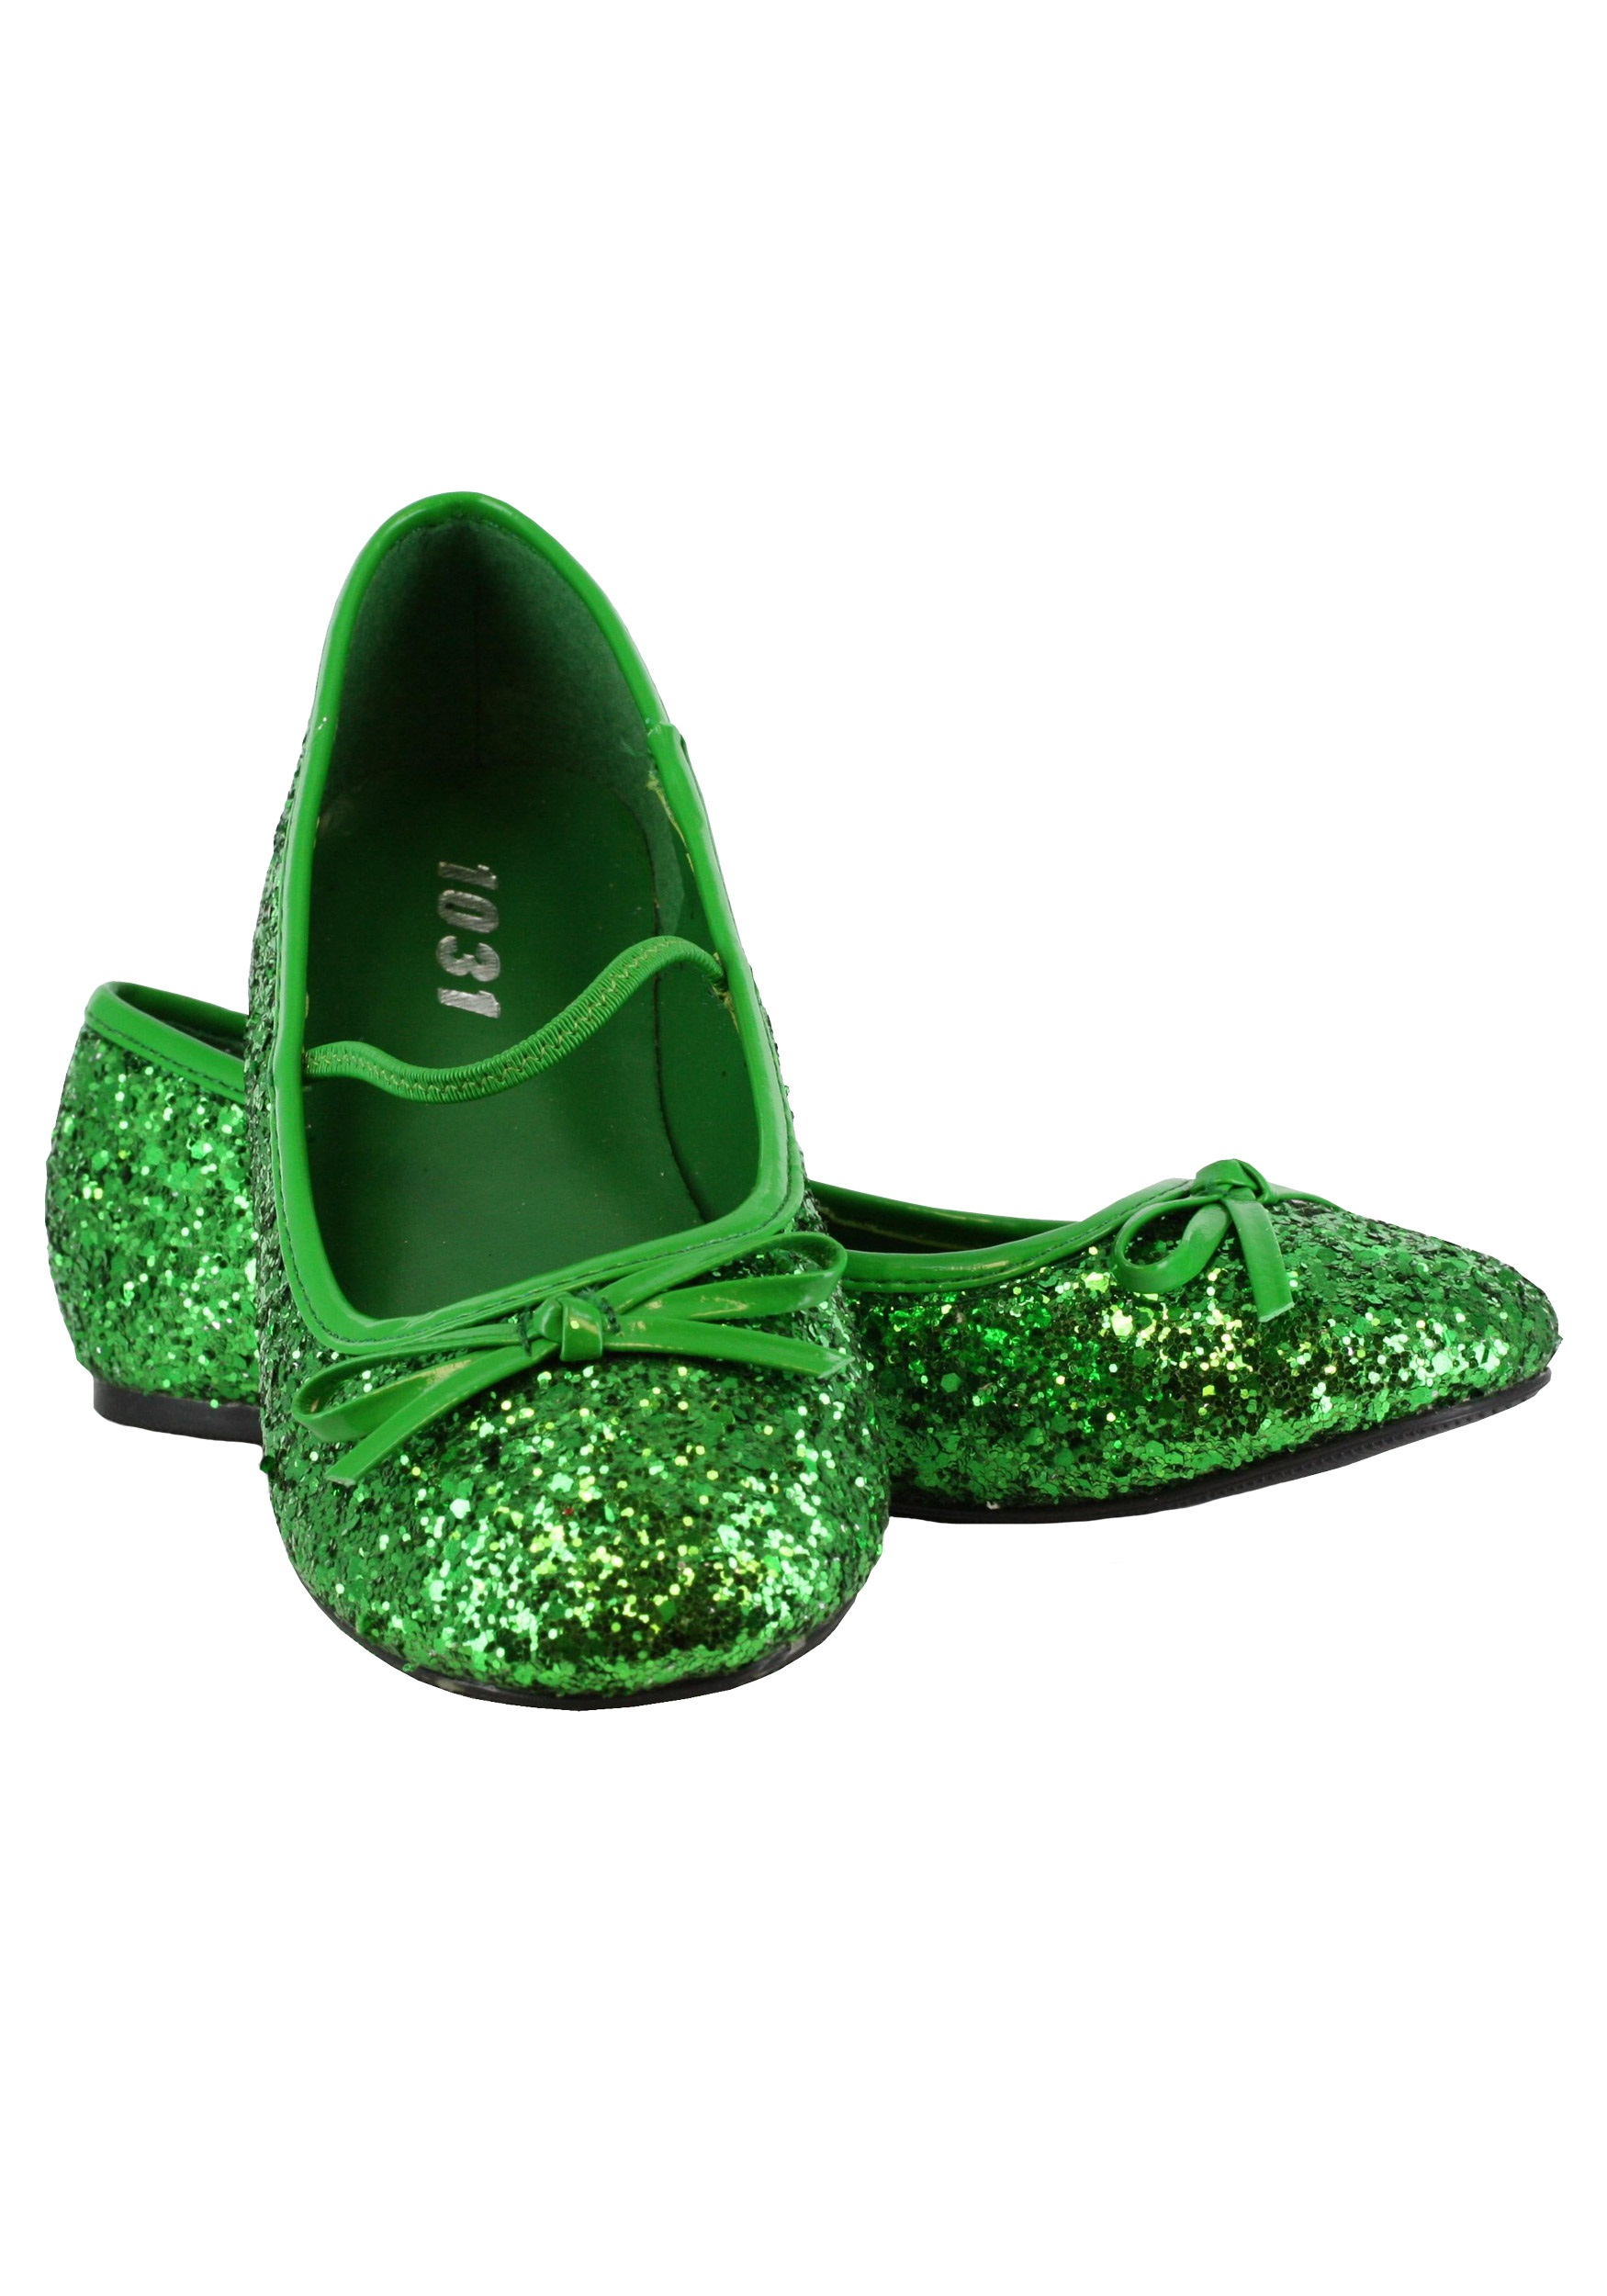 Shop Women's Flats & Loafers At gassws3m047.ga Enjoy Free Shipping & Returns On All Orders.